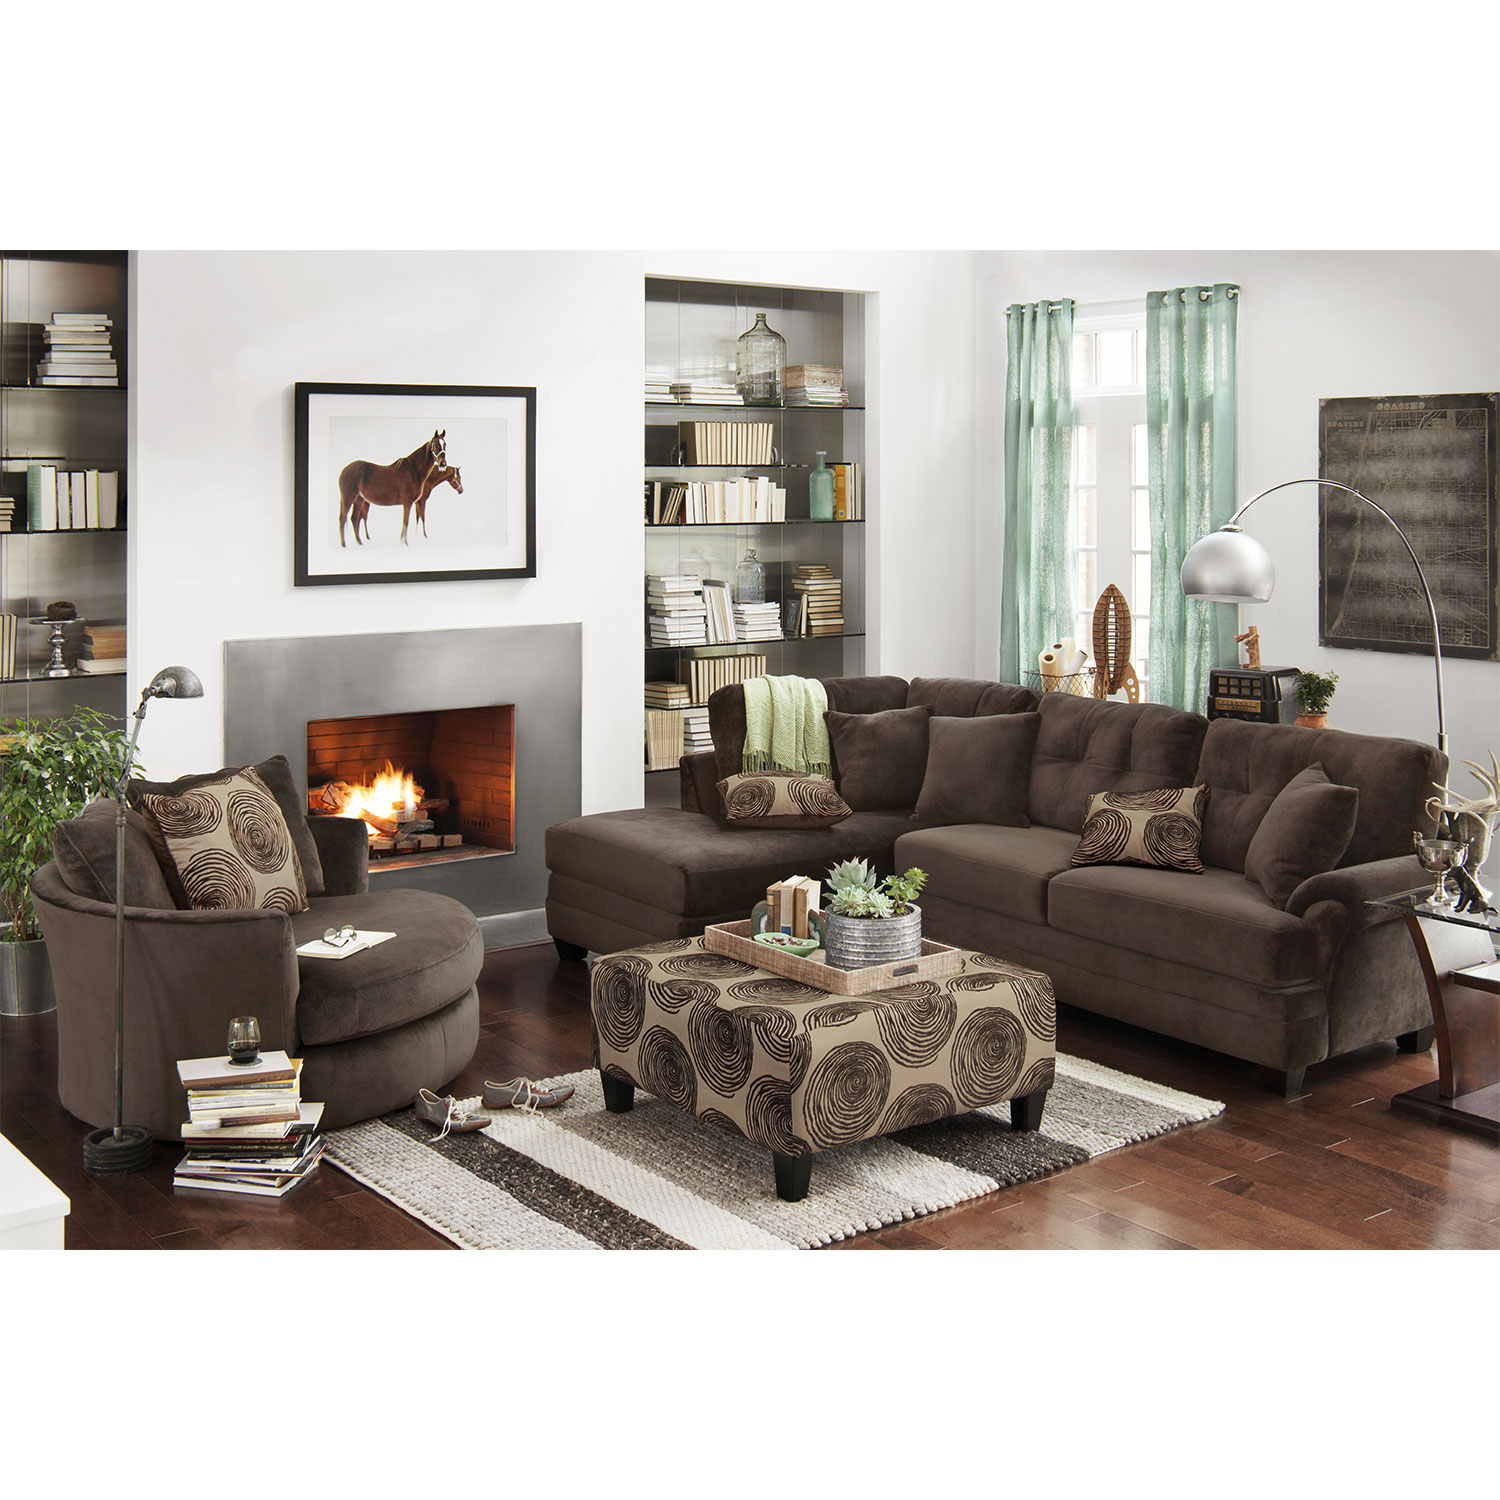 Living room furniture cordoba 2 pc sectional - Living Room Furniture Cordelle 2 Piece Left Facing Chaise Sectional Chocolate Hover Touch To Zoom Click To Change Image